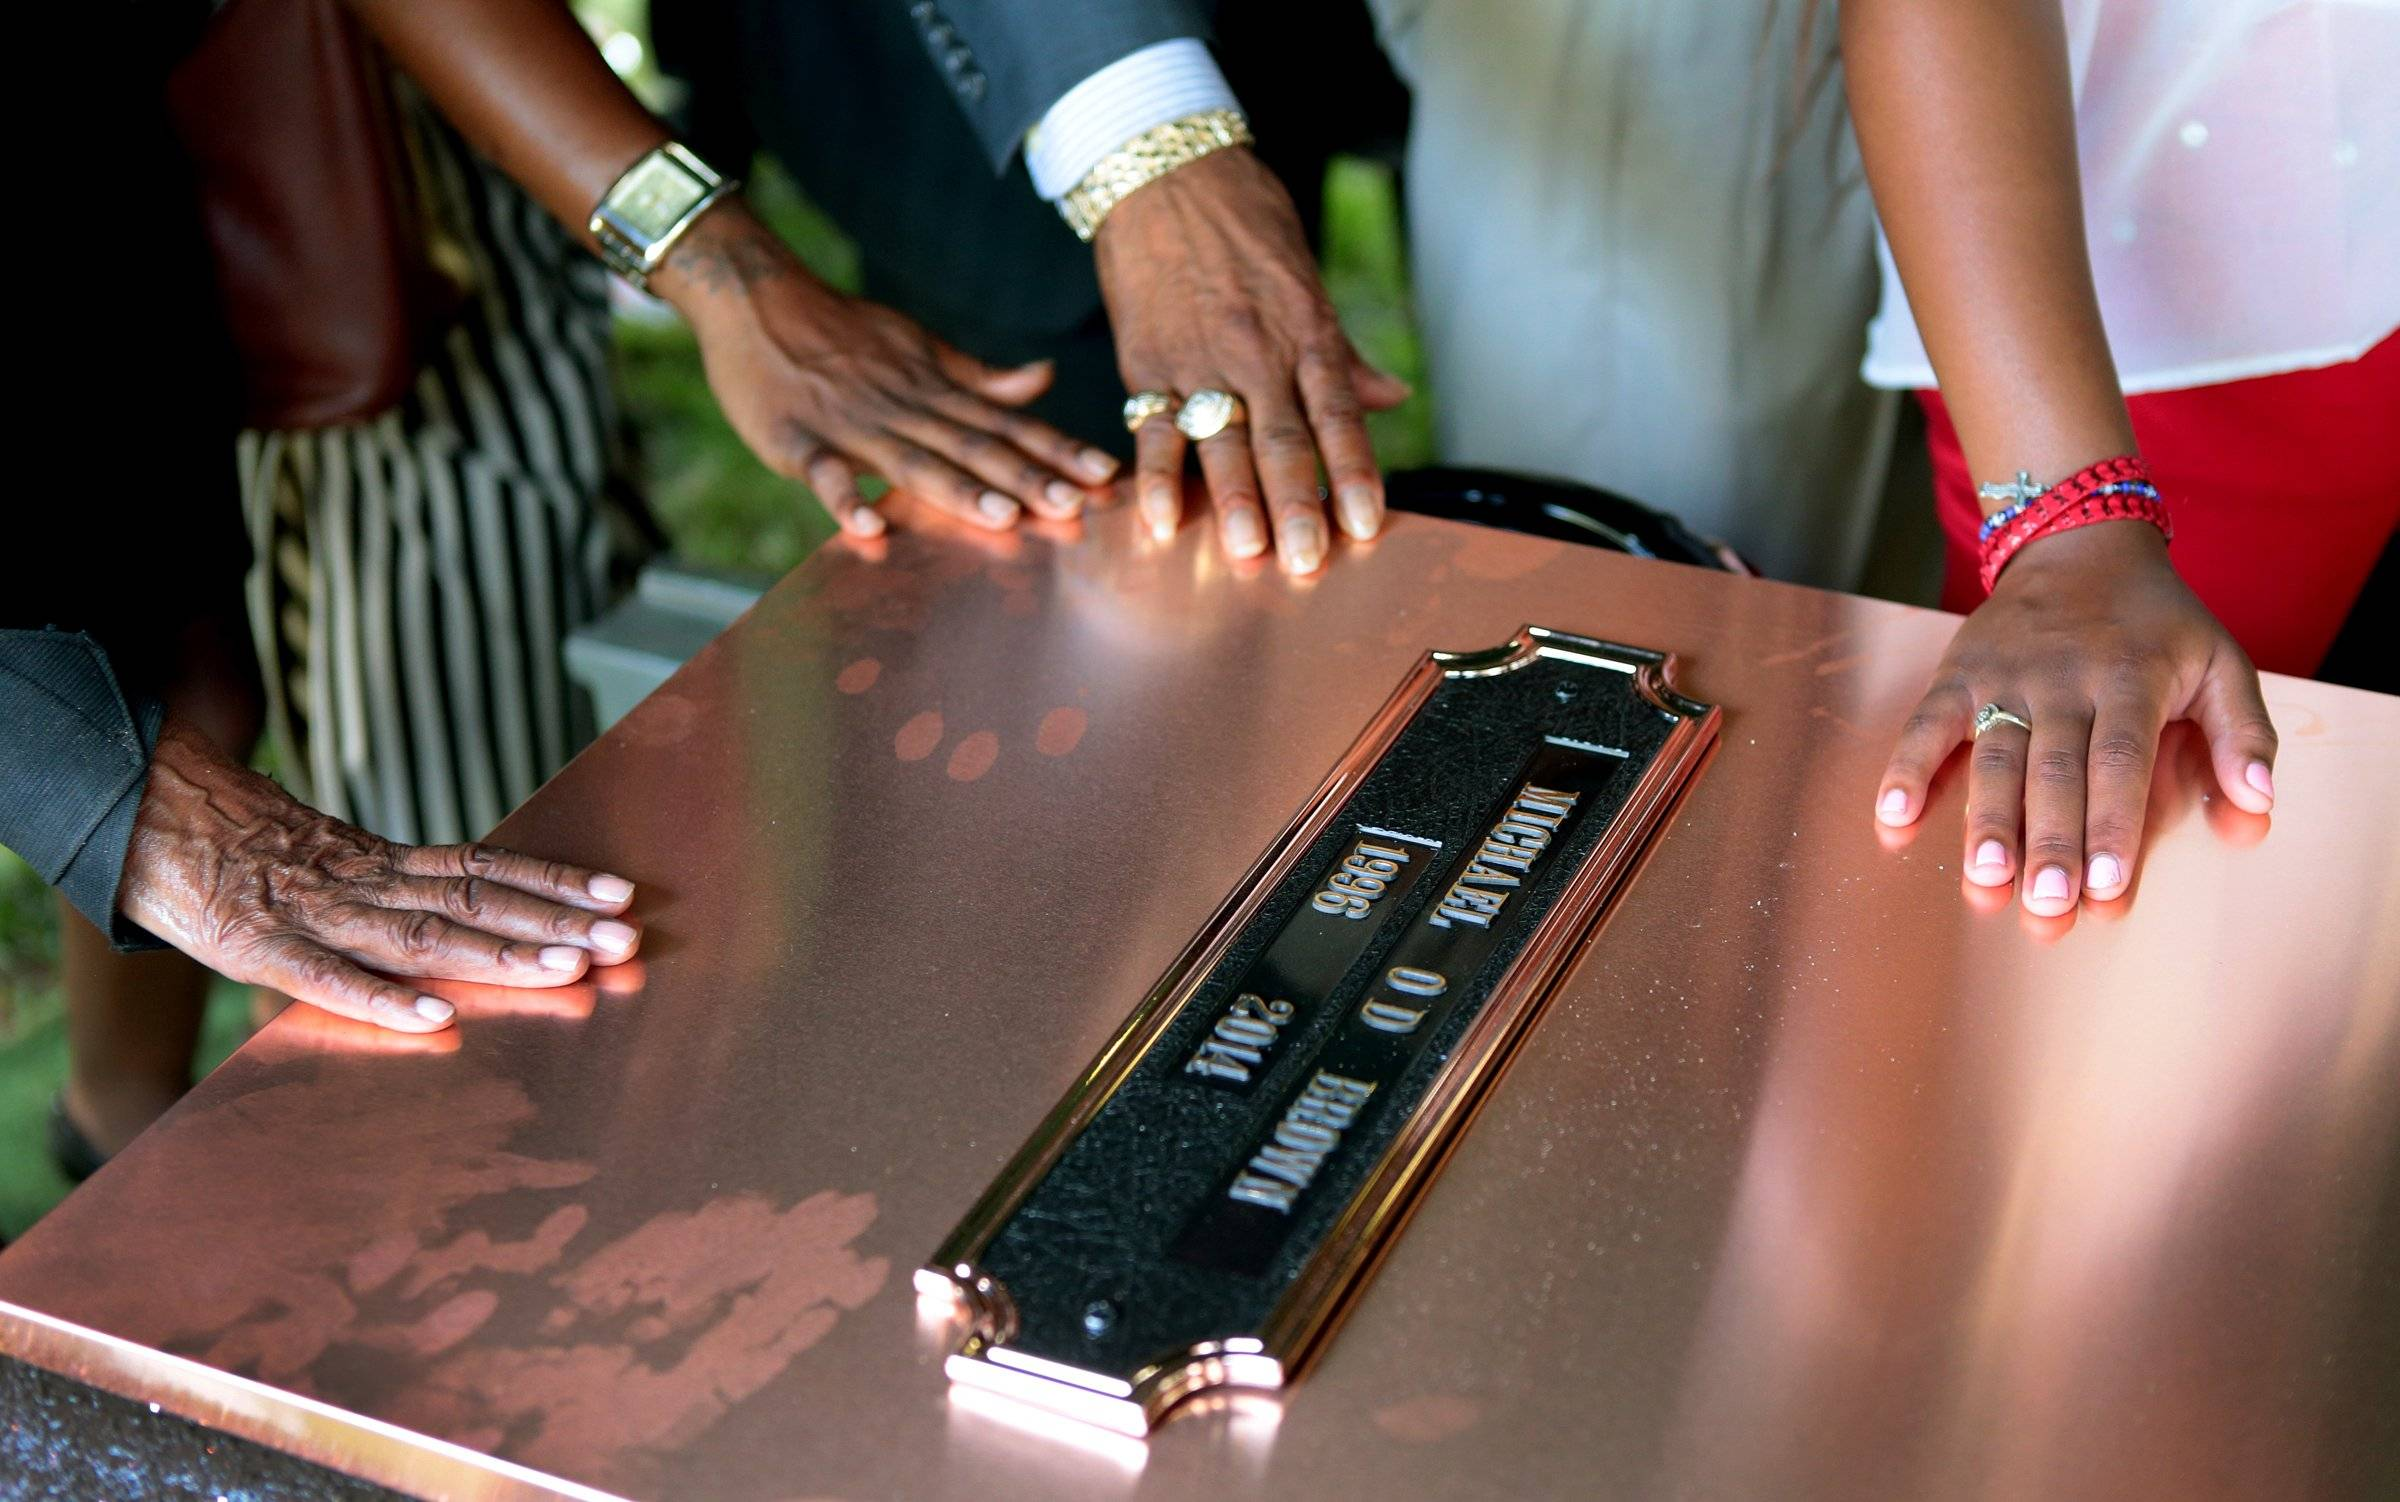 Family members touch the copper top of the vault containing the casket of Michael Brown during his funeral on Monday, Aug. 25, 2014, in Normandy, Mo. Hundreds of people gathered to say goodbye to Brown, who was shot and killed by a Ferguson, Mo., police officer on Aug. 9.